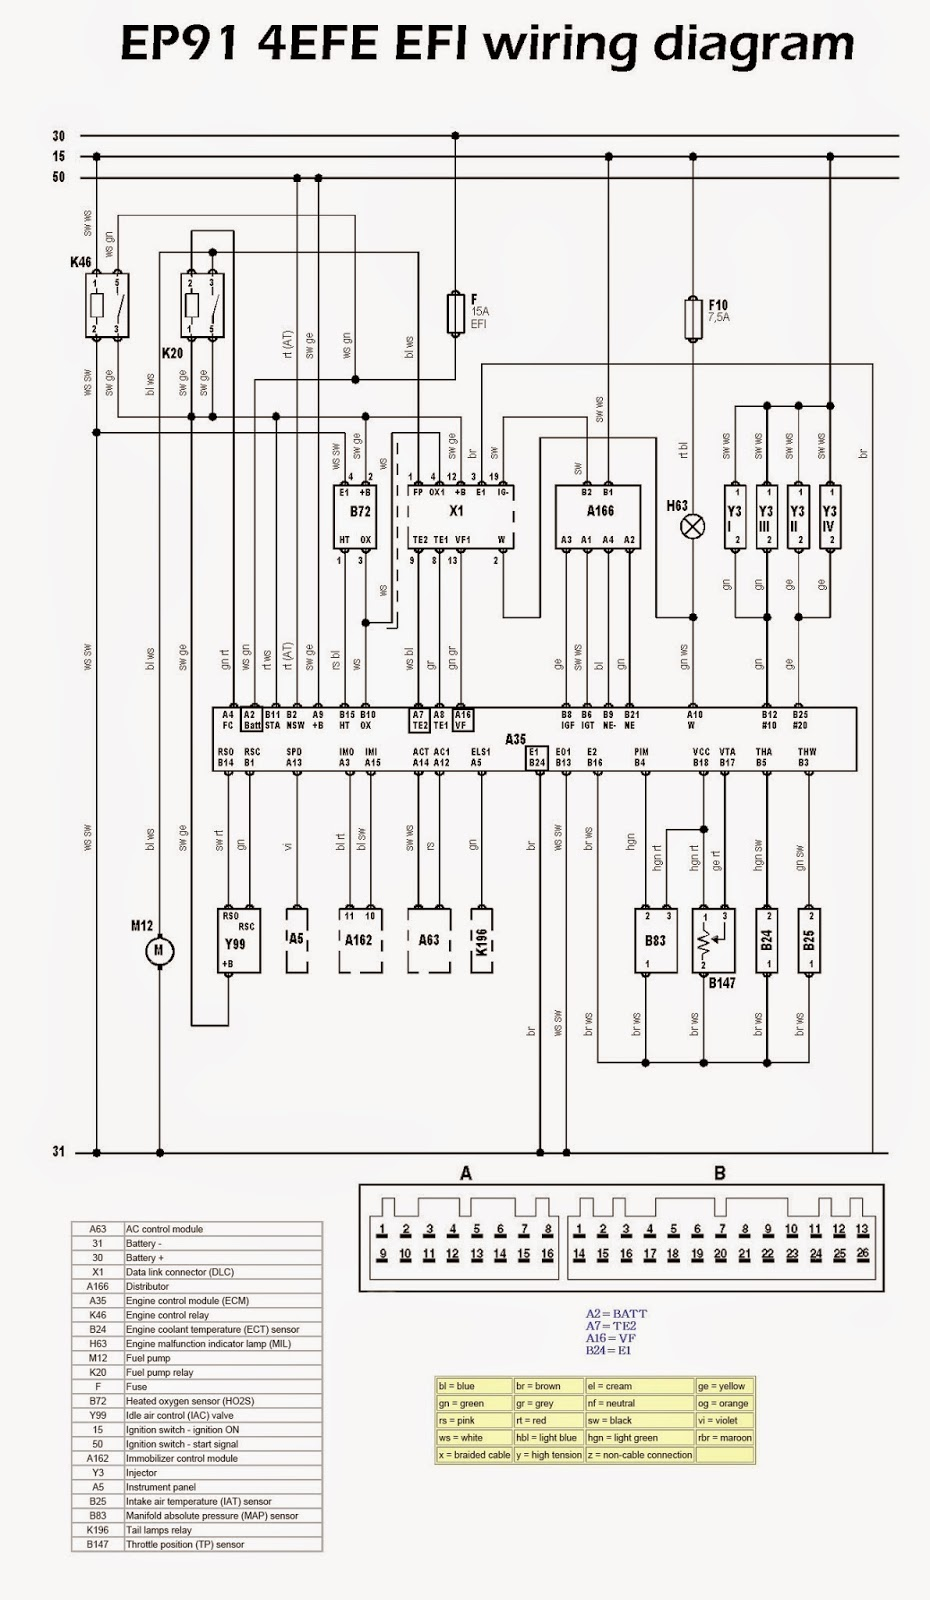 Phenomenal Toyota Ecu Wiring Diagrams General Wiring Diagram Data Wiring Digital Resources Ommitdefiancerspsorg